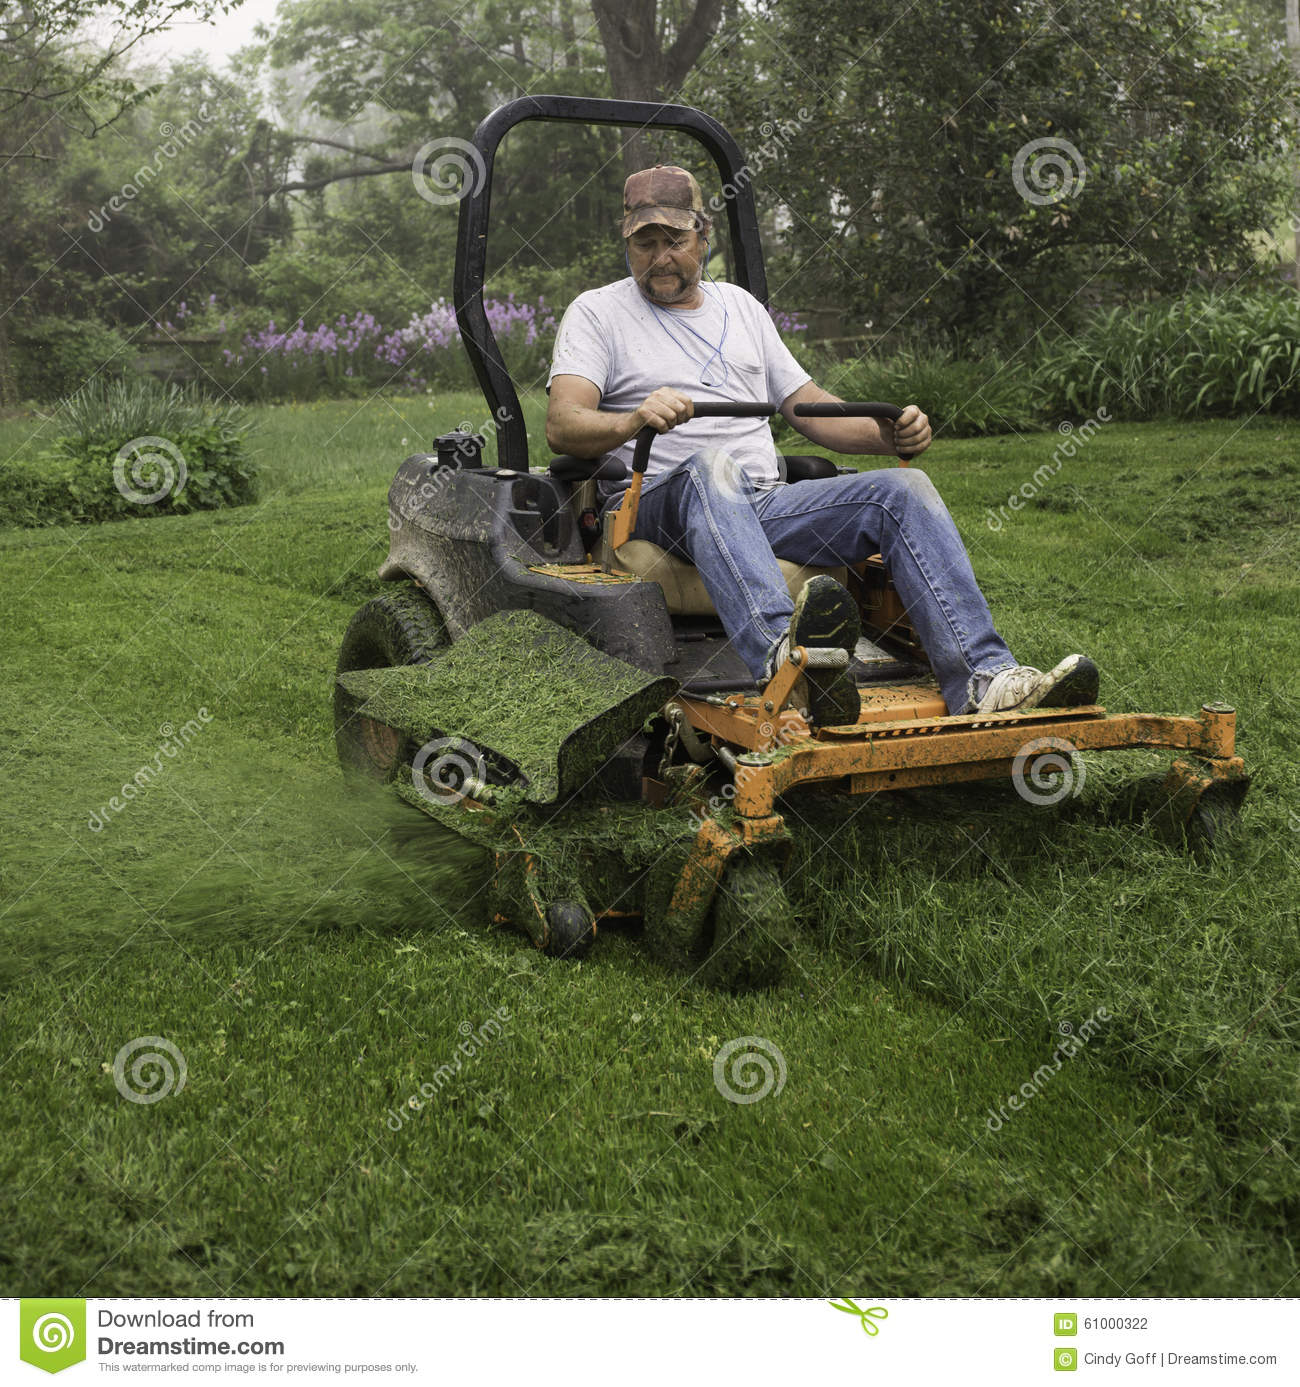 Lawn And Garden Service Business Plan Sample